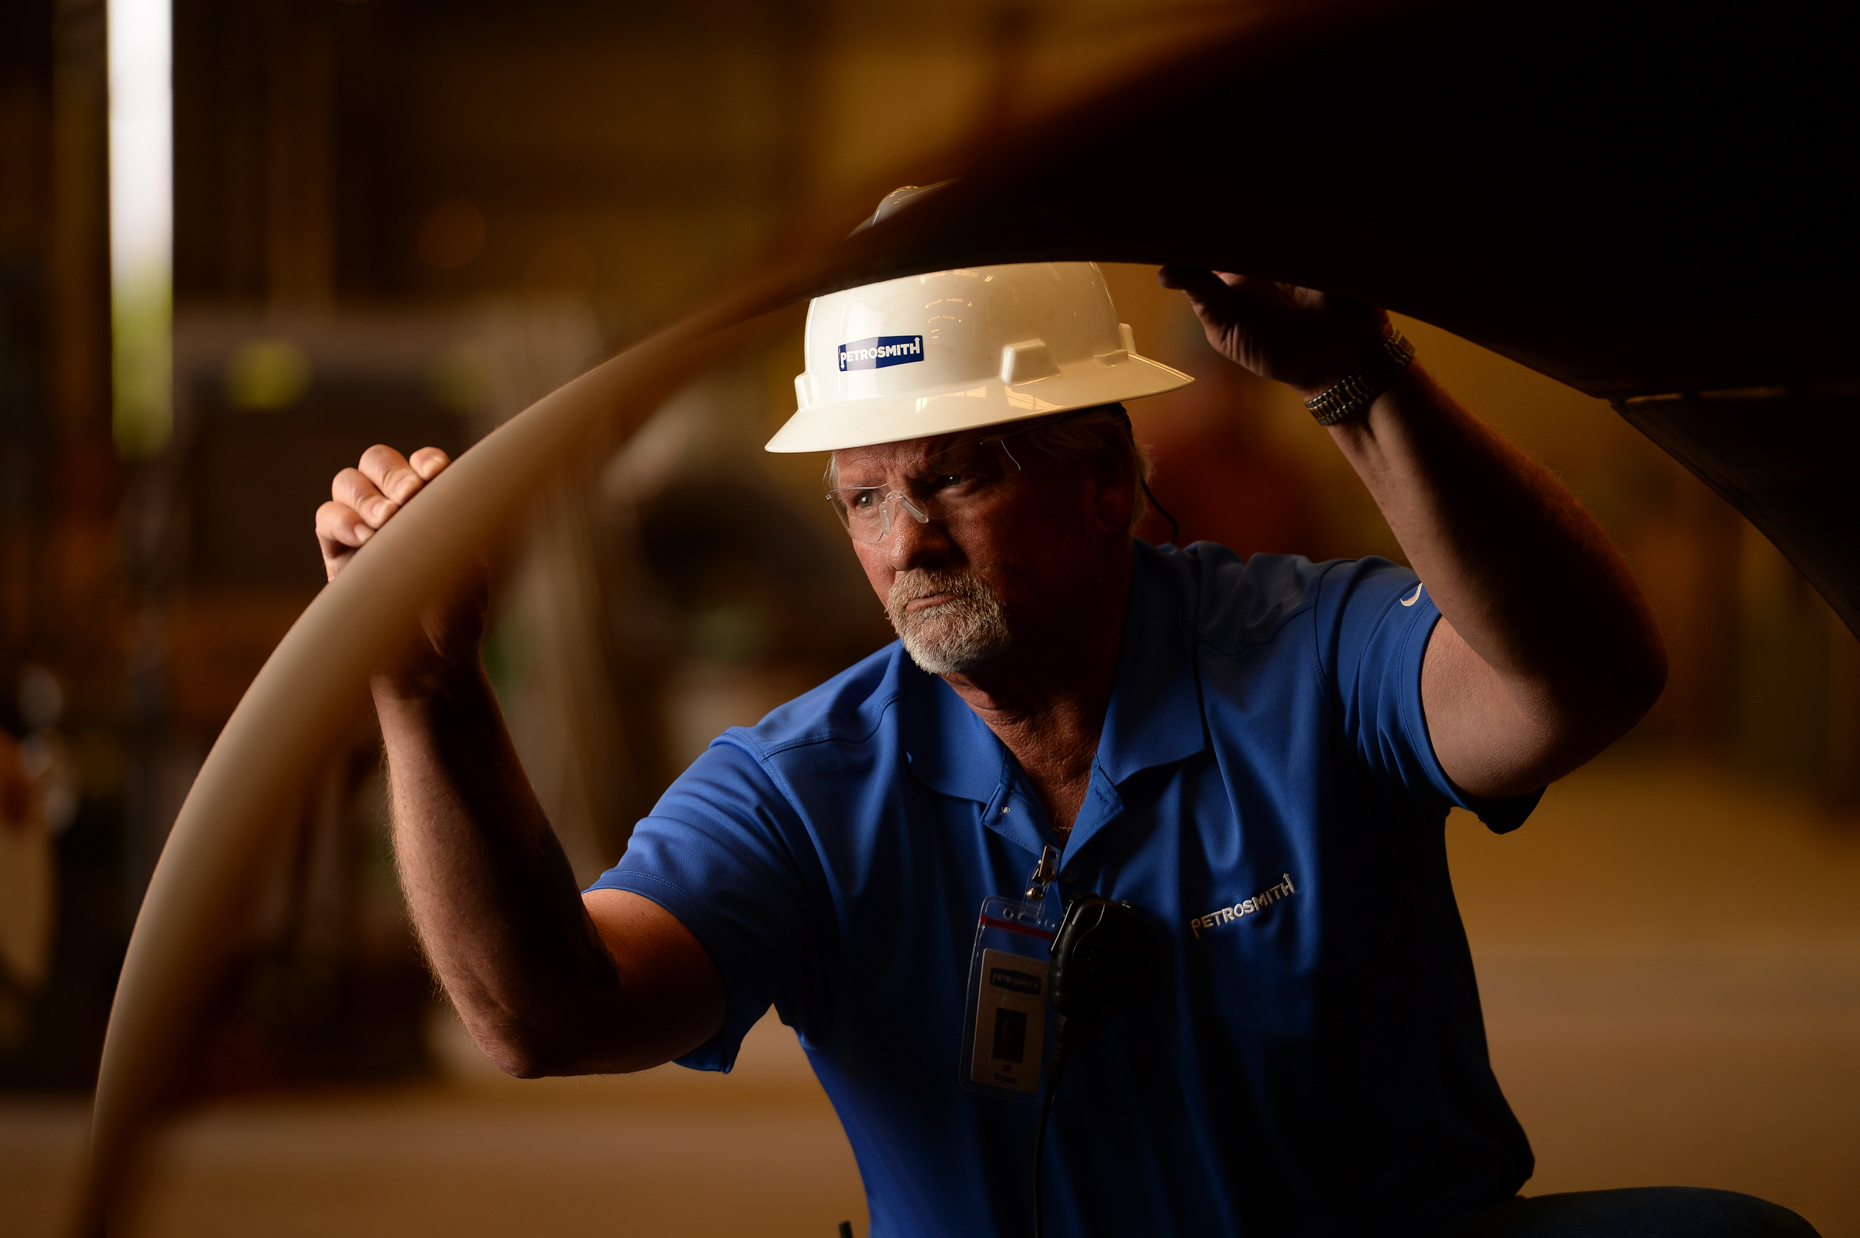 Manufacturing and industrial photography in Abilene, Texas by Kevin Brown.